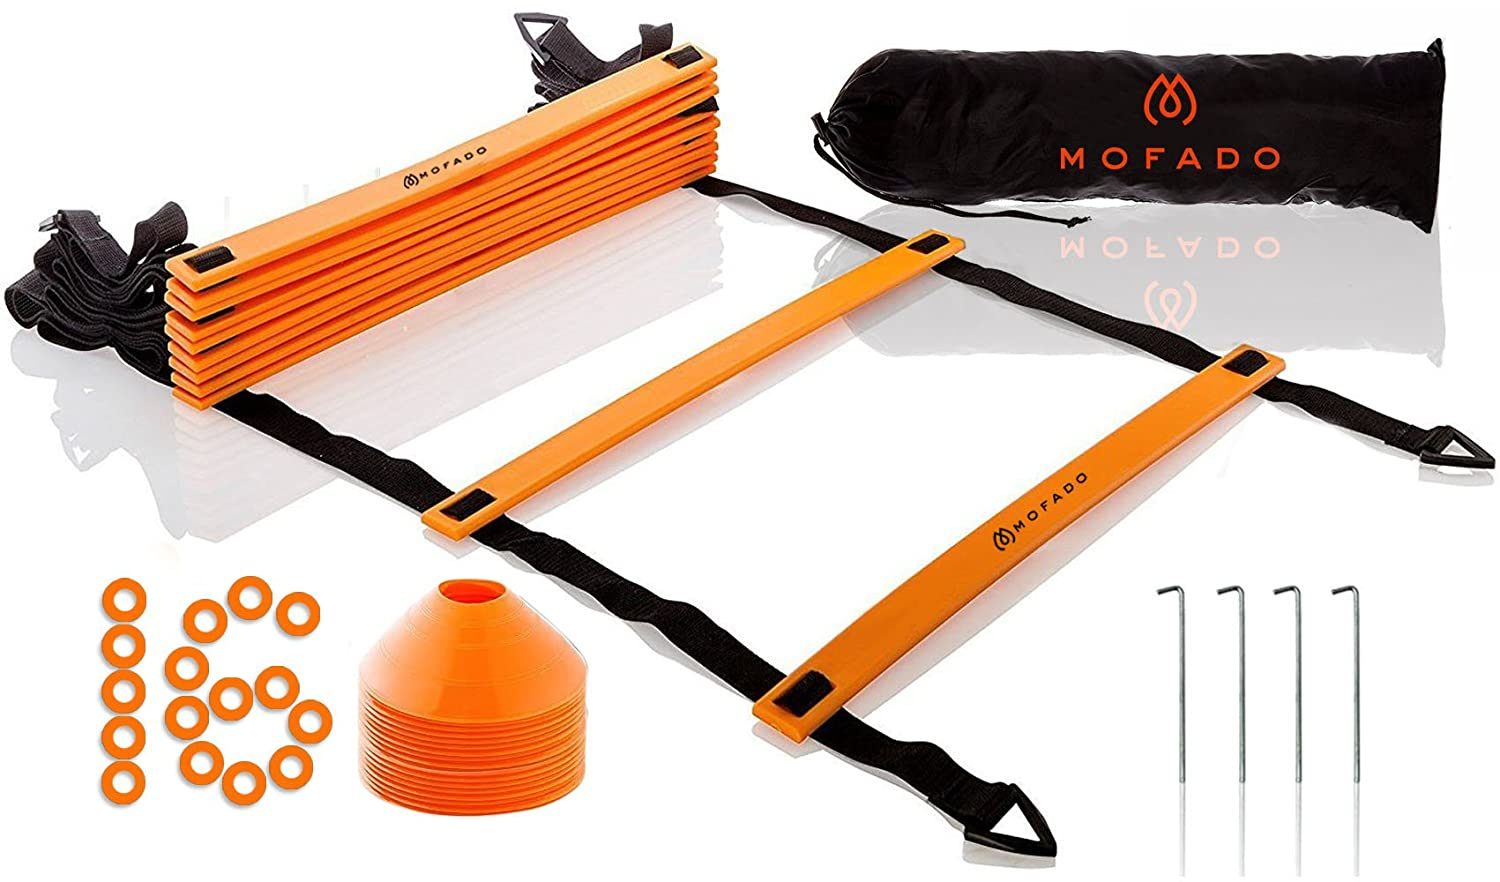 Premium Agility Ladder and Cones - 16 Field Cones - 12 Rung Speed Ladder - 19ft Length - Speed Training Equipment for Football, Soccer & Other Sports - Set of 4 Metal Pegs & Carrying Bag